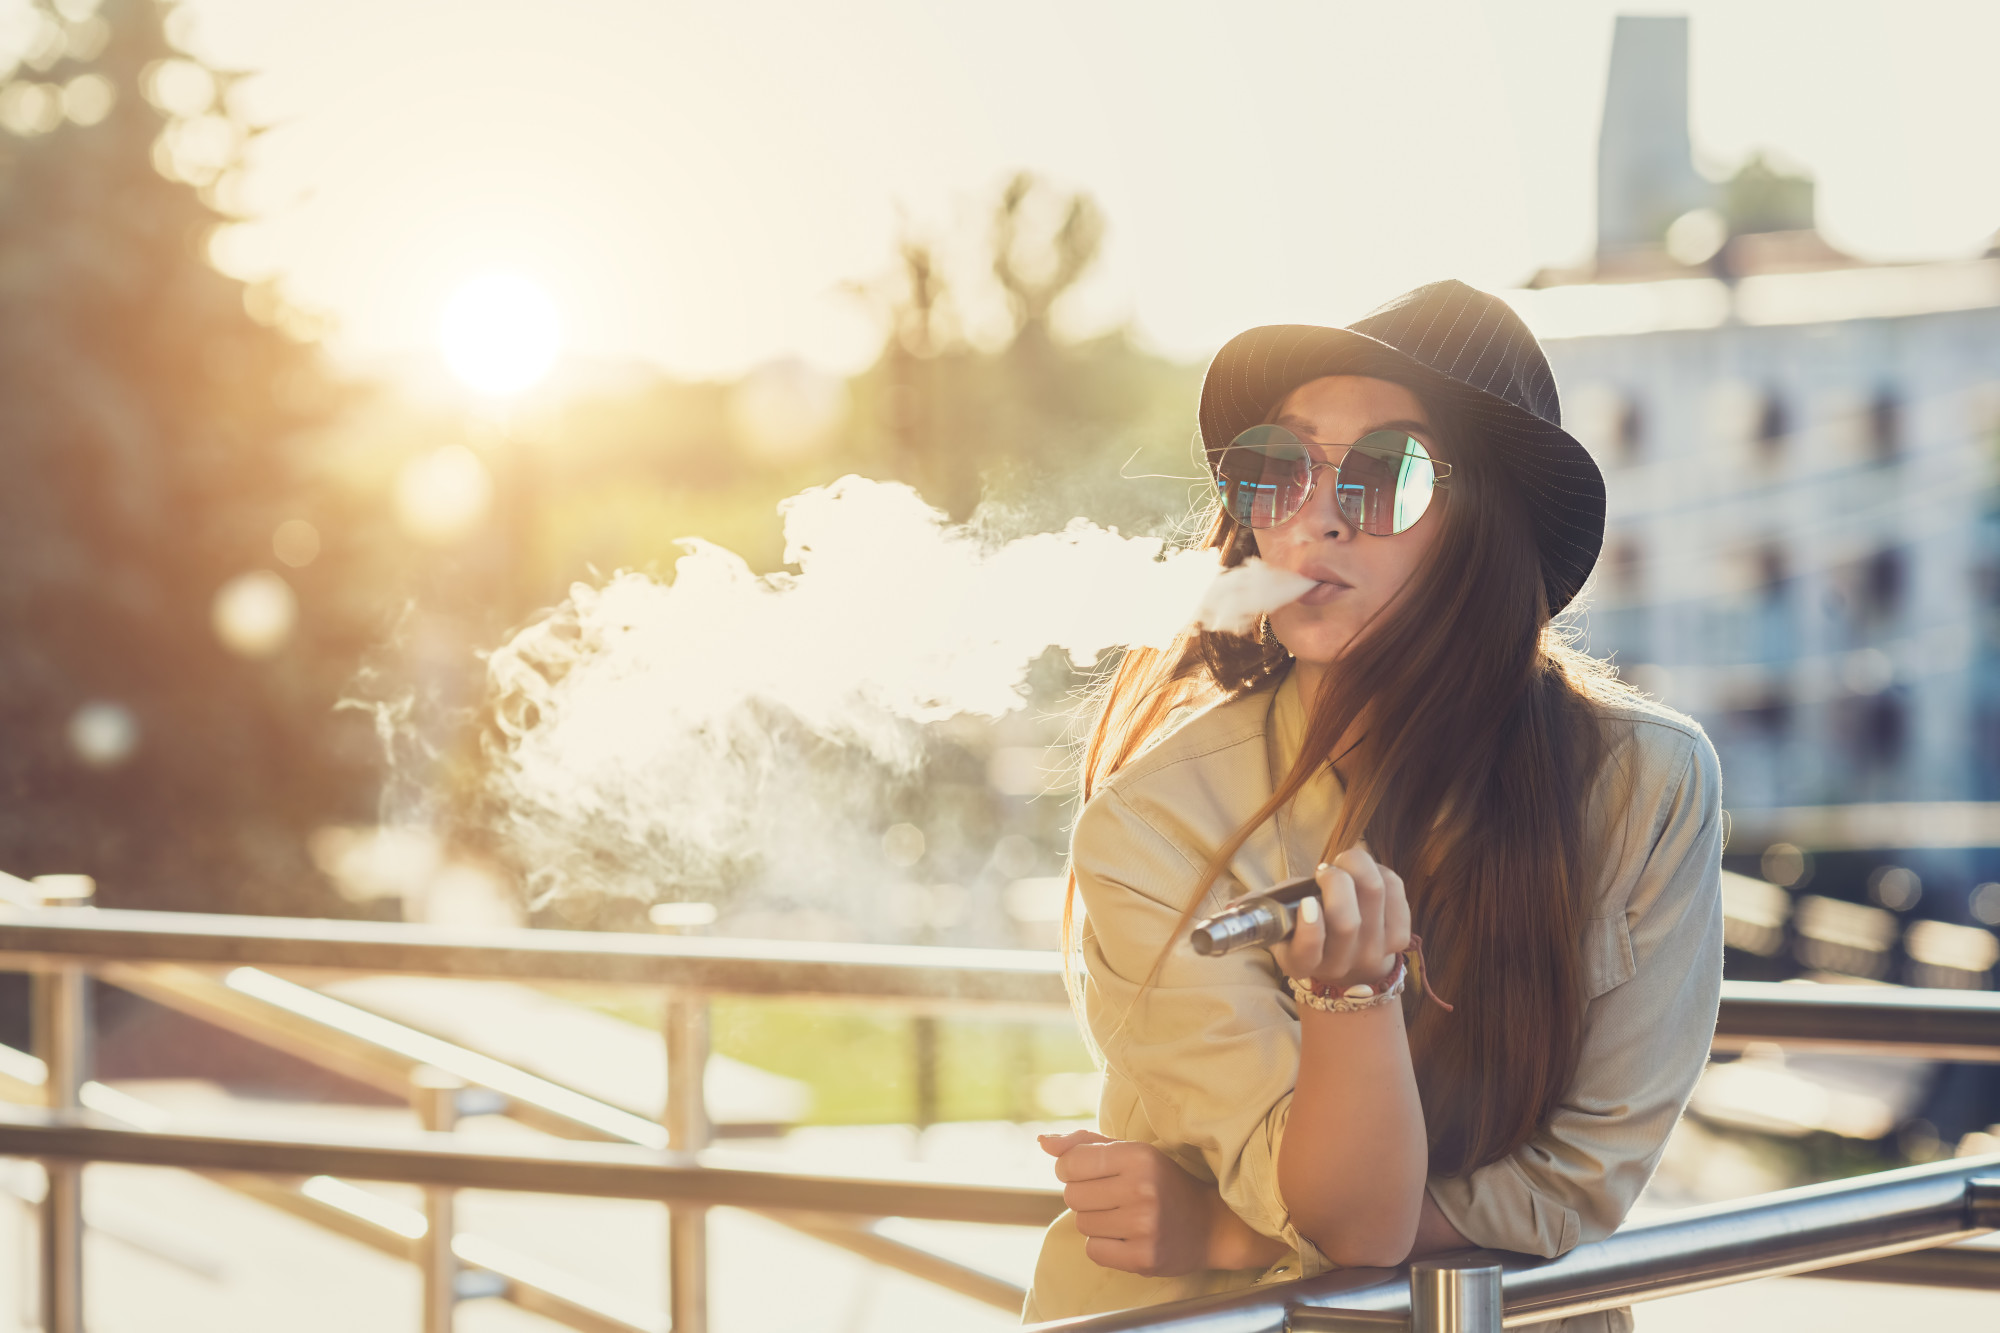 Top 10 Vaping Tips for Beginner's: Look Like a Pro